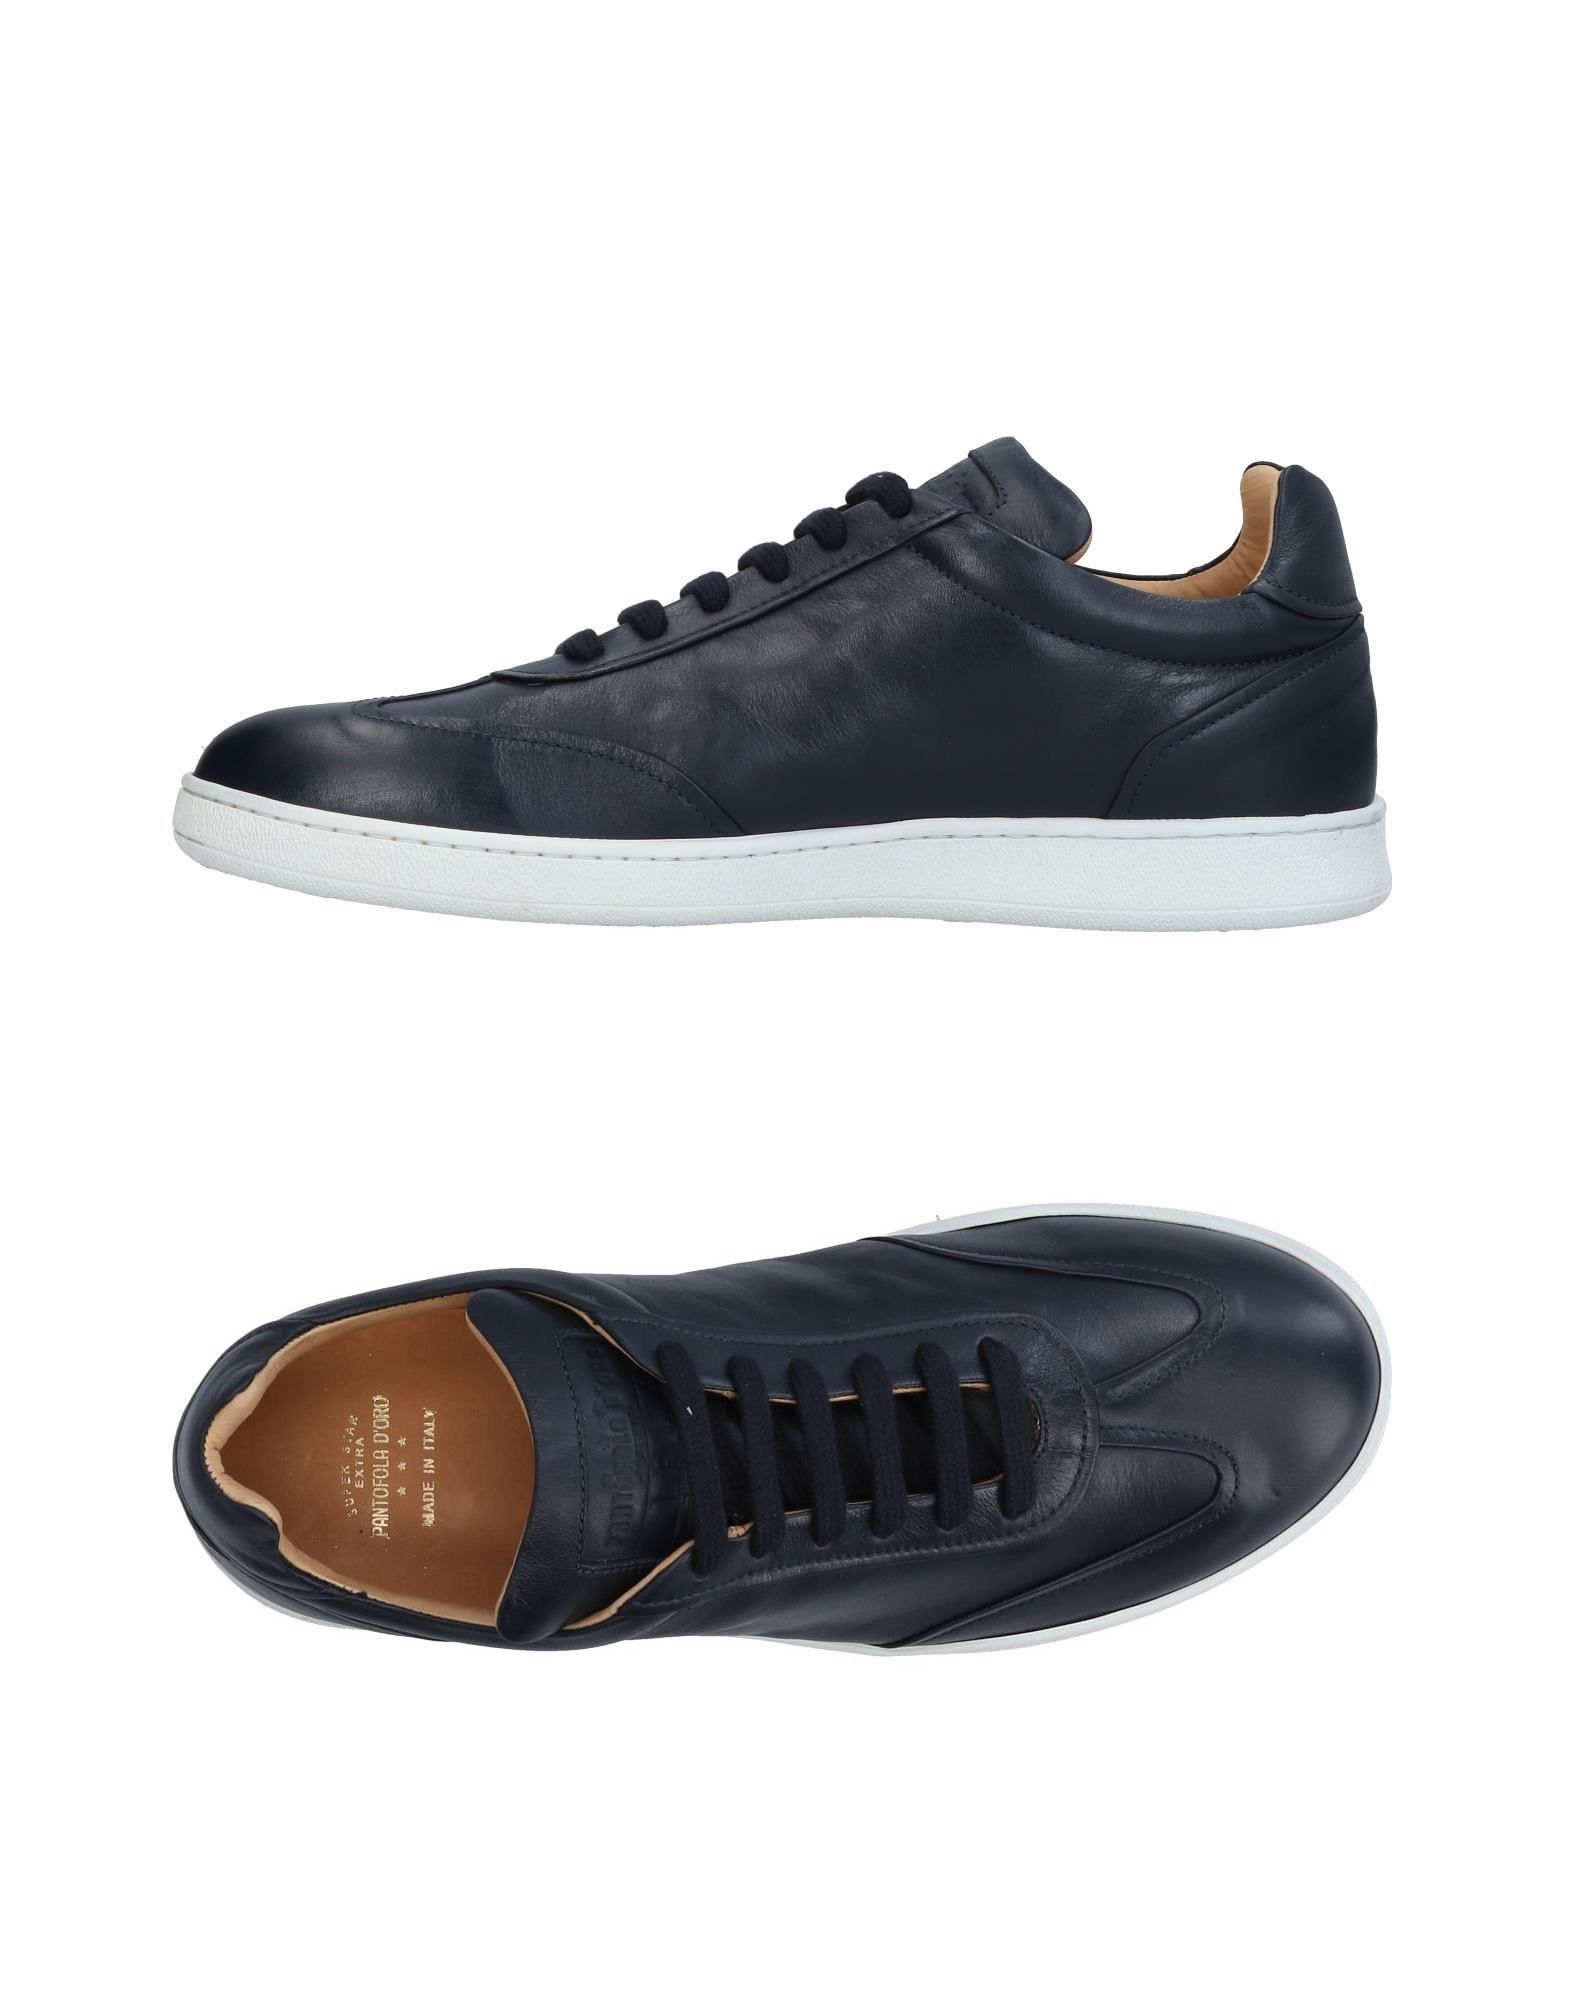 Pantofola D'oro Sneakers Sneakers - Men Pantofola D'oro Sneakers Sneakers online on  United Kingdom - 11455574HI cc90a1